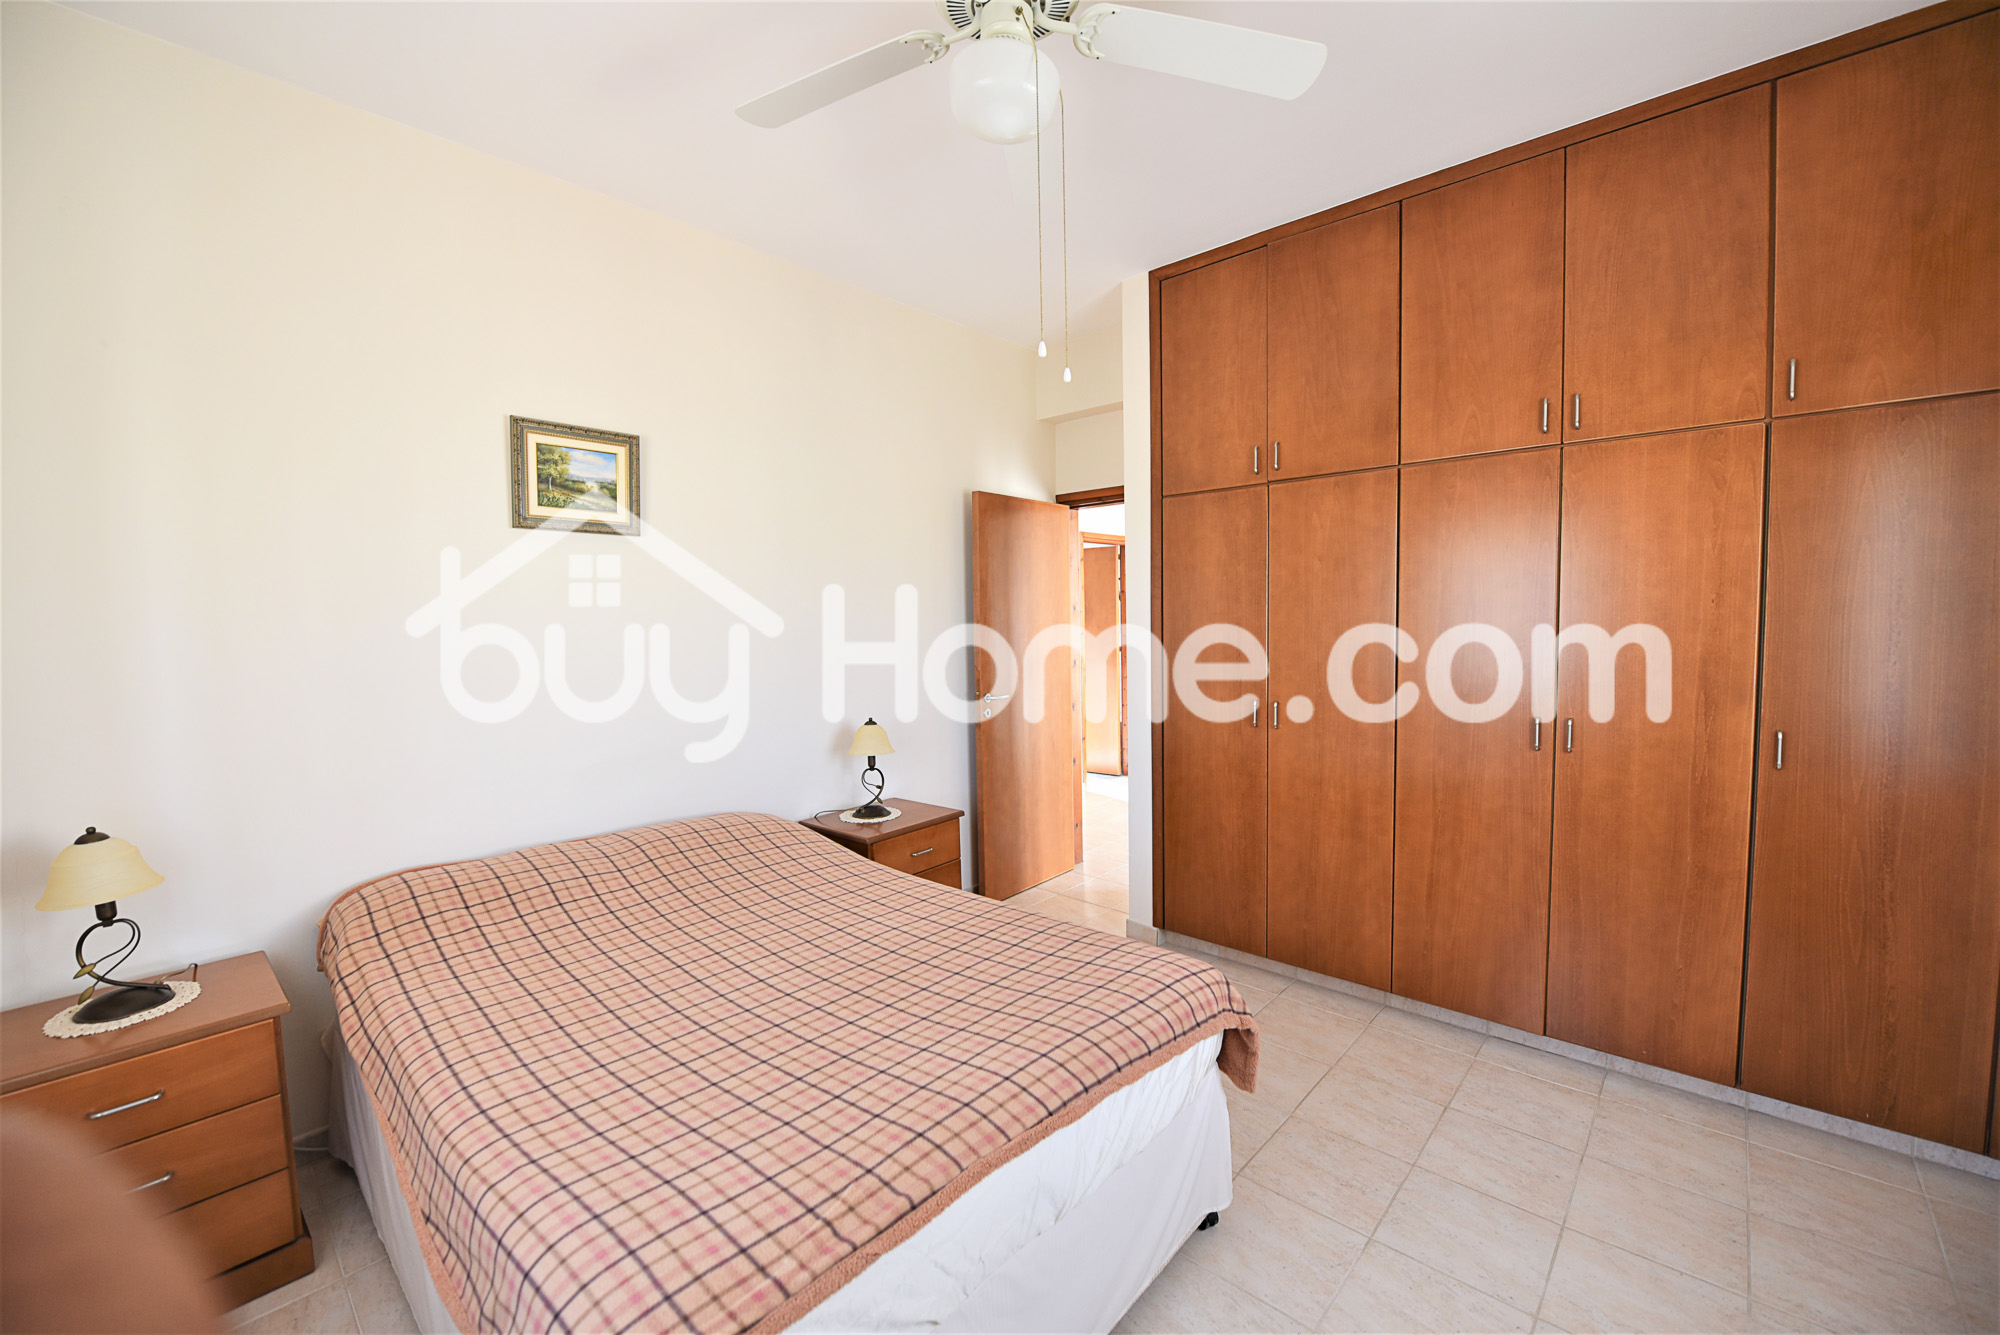 Immaculate 3 Bedroom House | BuyHome